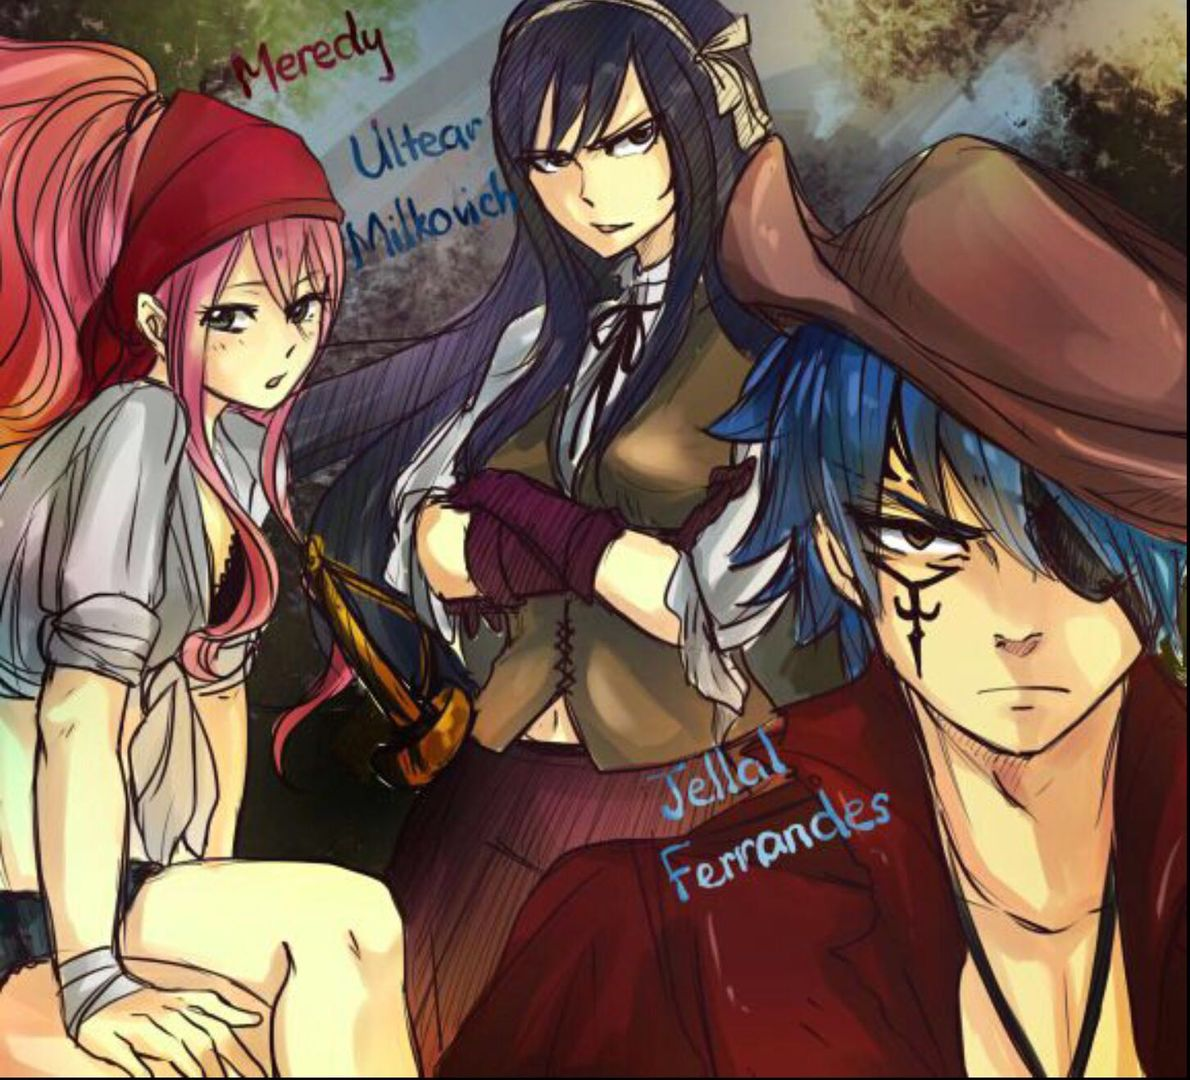 Pics of fairytail - Jellal, Meredy,and Ultear as pirates ...